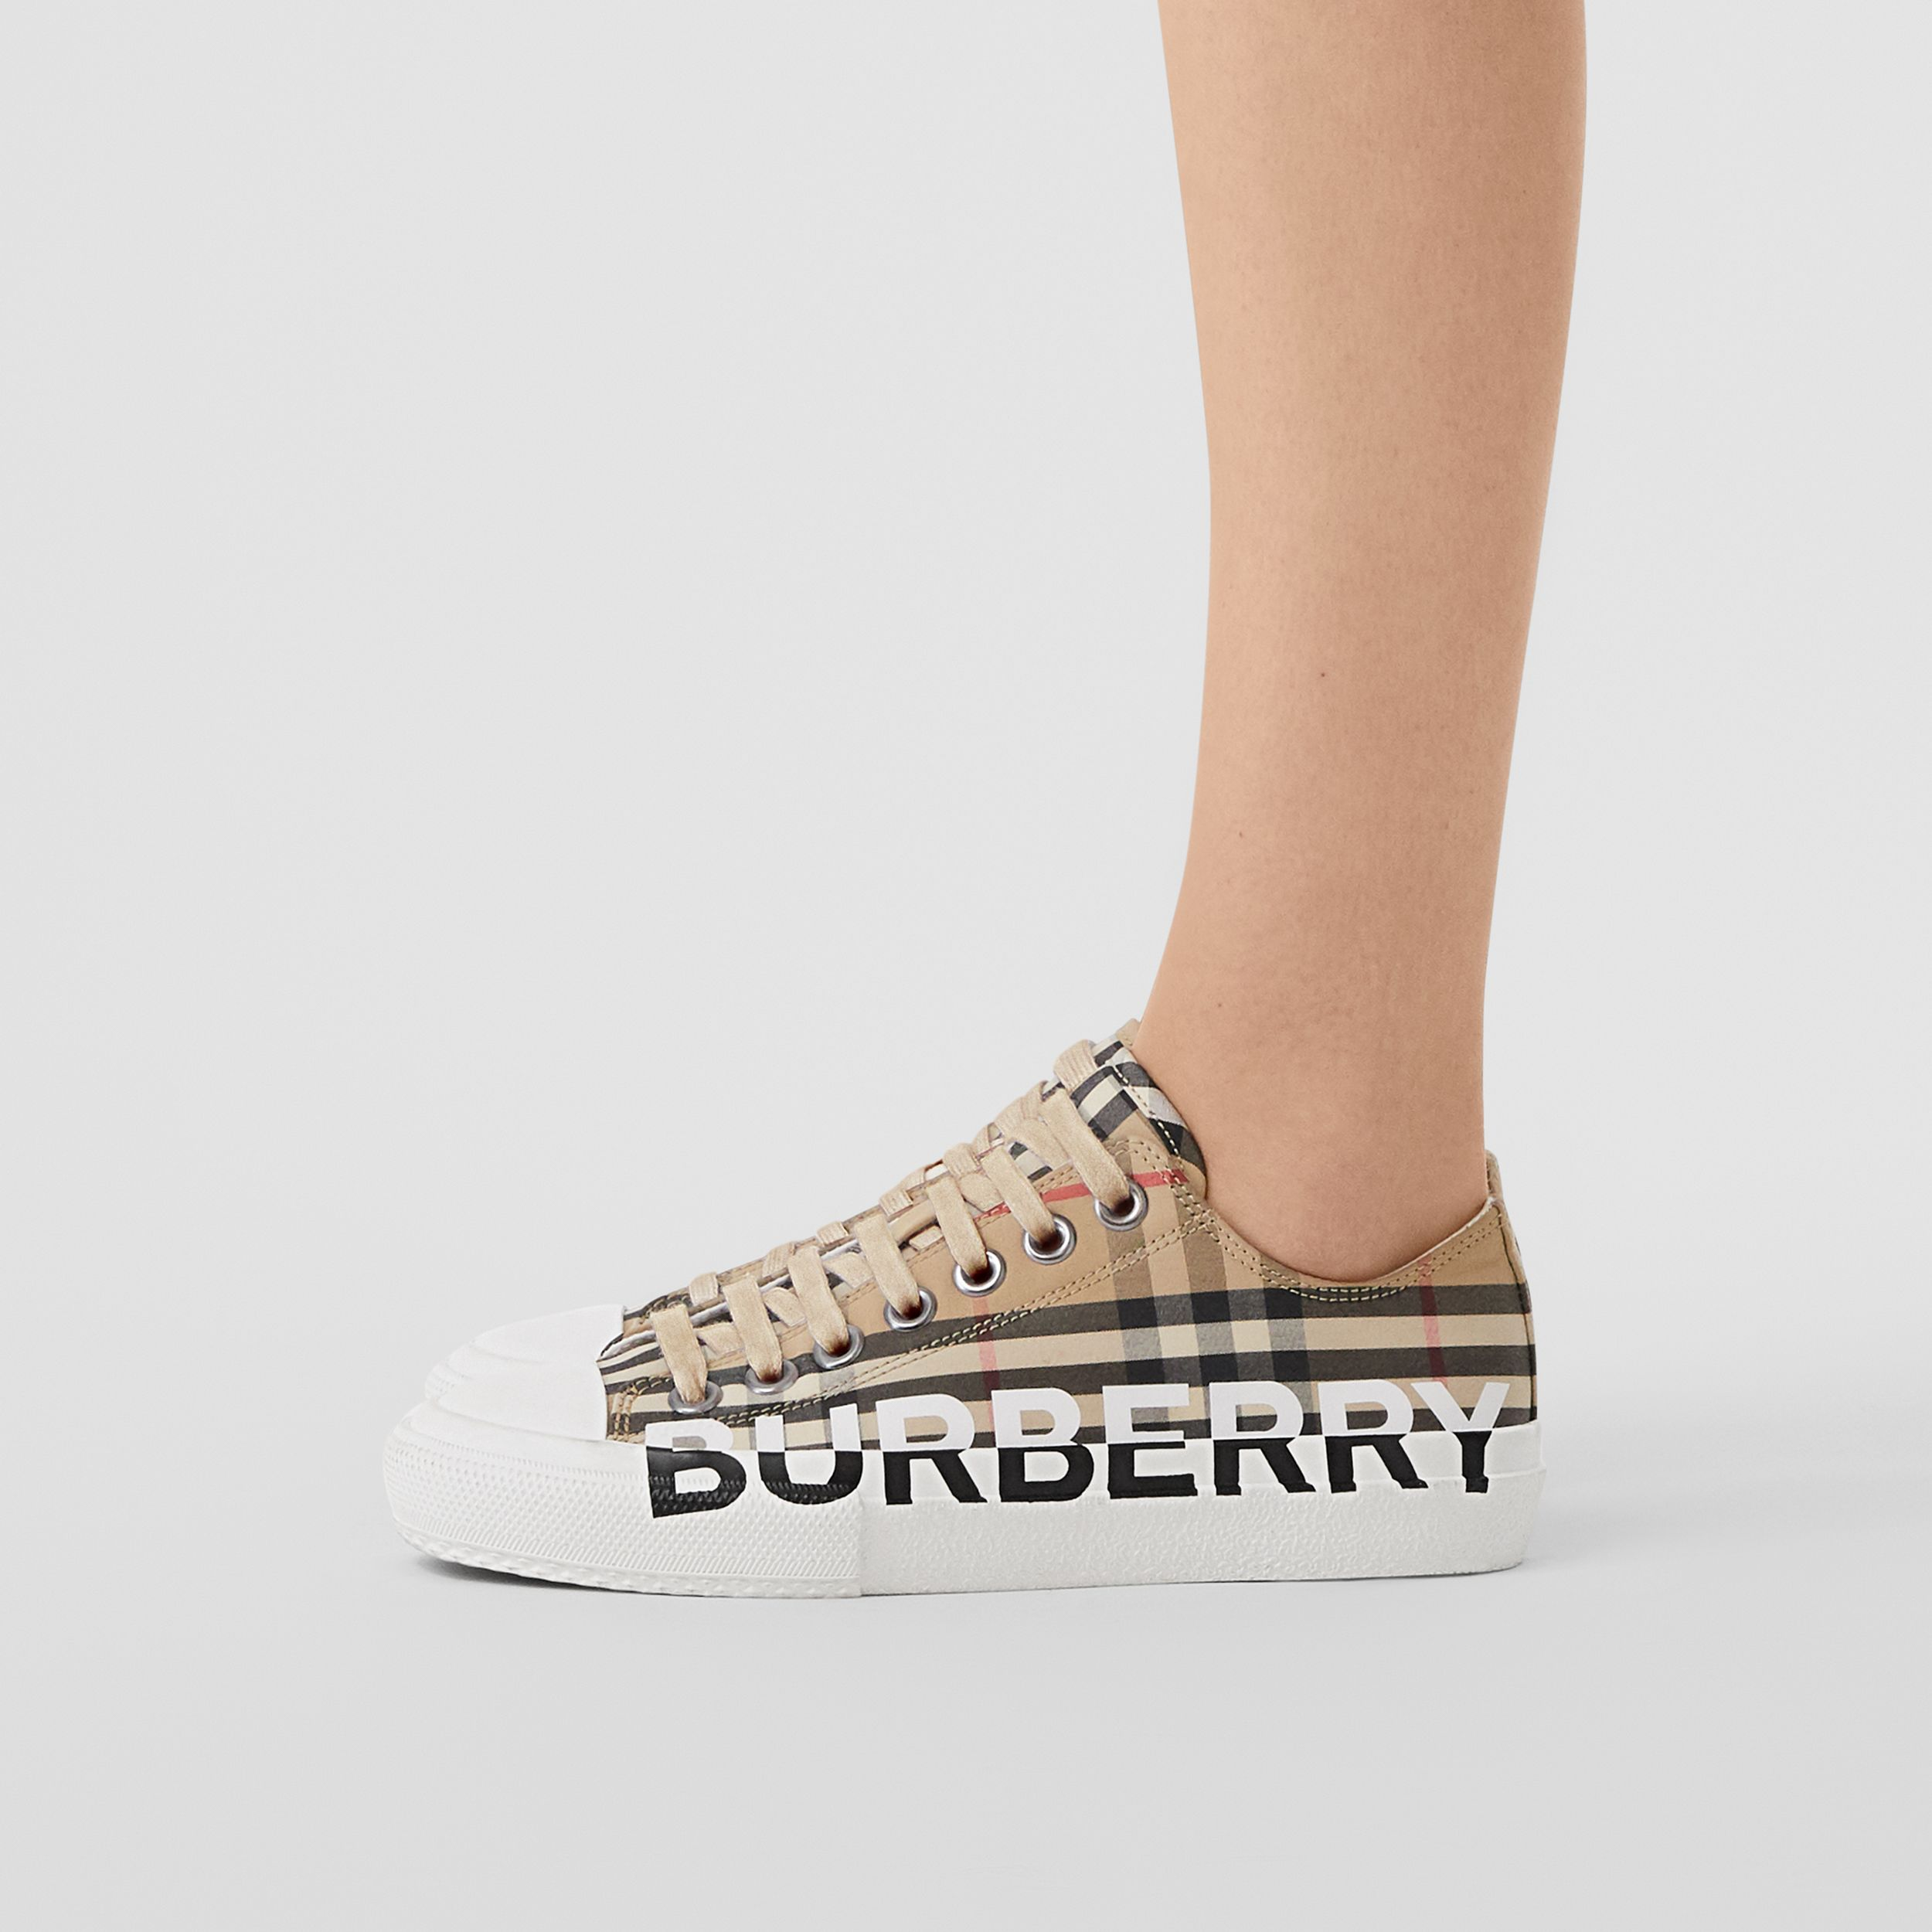 Logo Print Vintage Check Cotton Sneakers in Archive Beige - Women | Burberry - 3